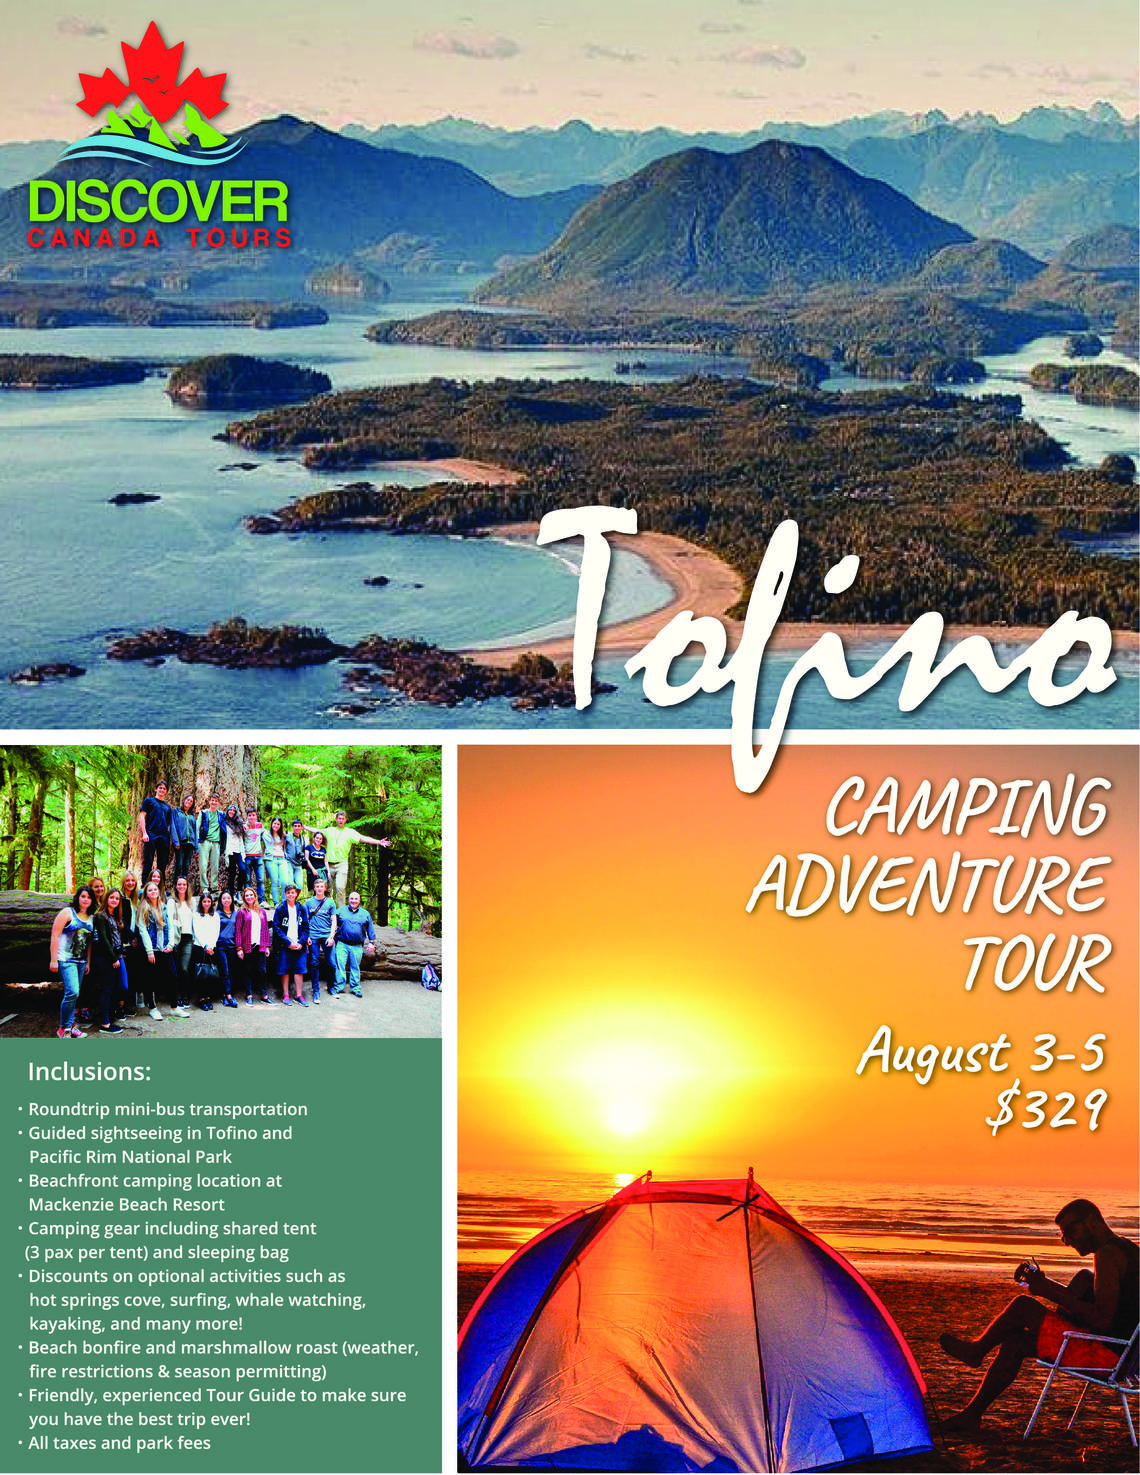 Discover Canada Tours - Tofino Ultimate Camping Tour